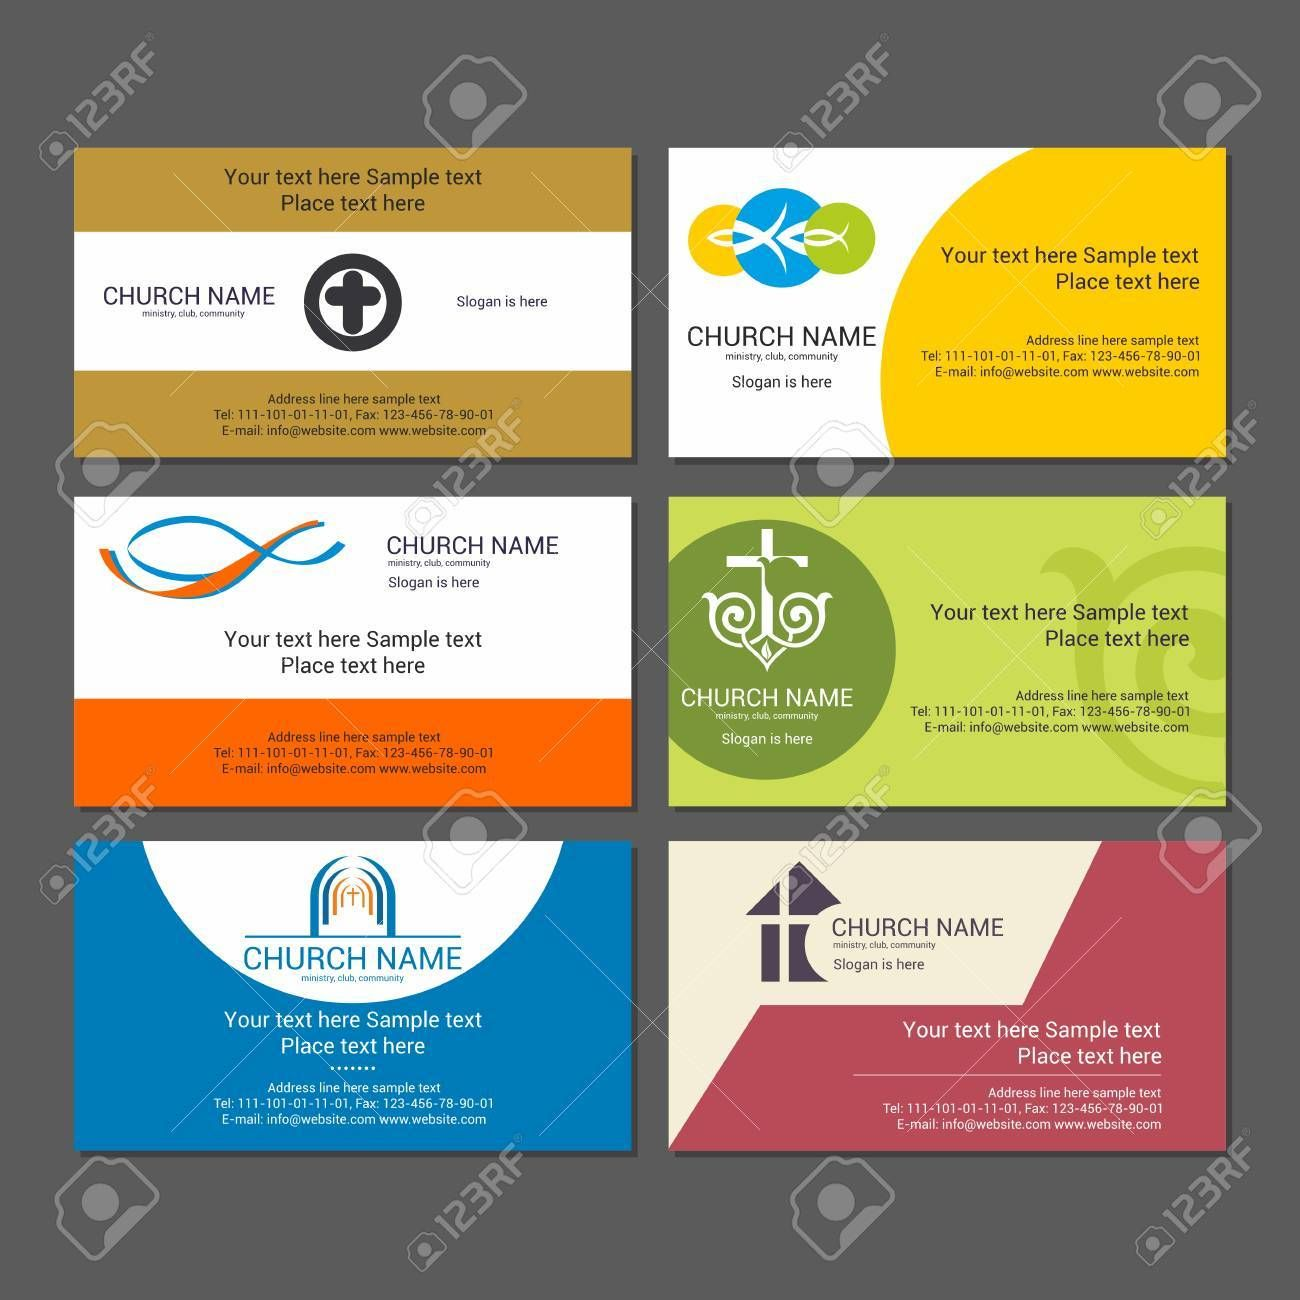 21+ Business Card Templates Christian View Christian Business Throughout Christian Business Cards Templates Free